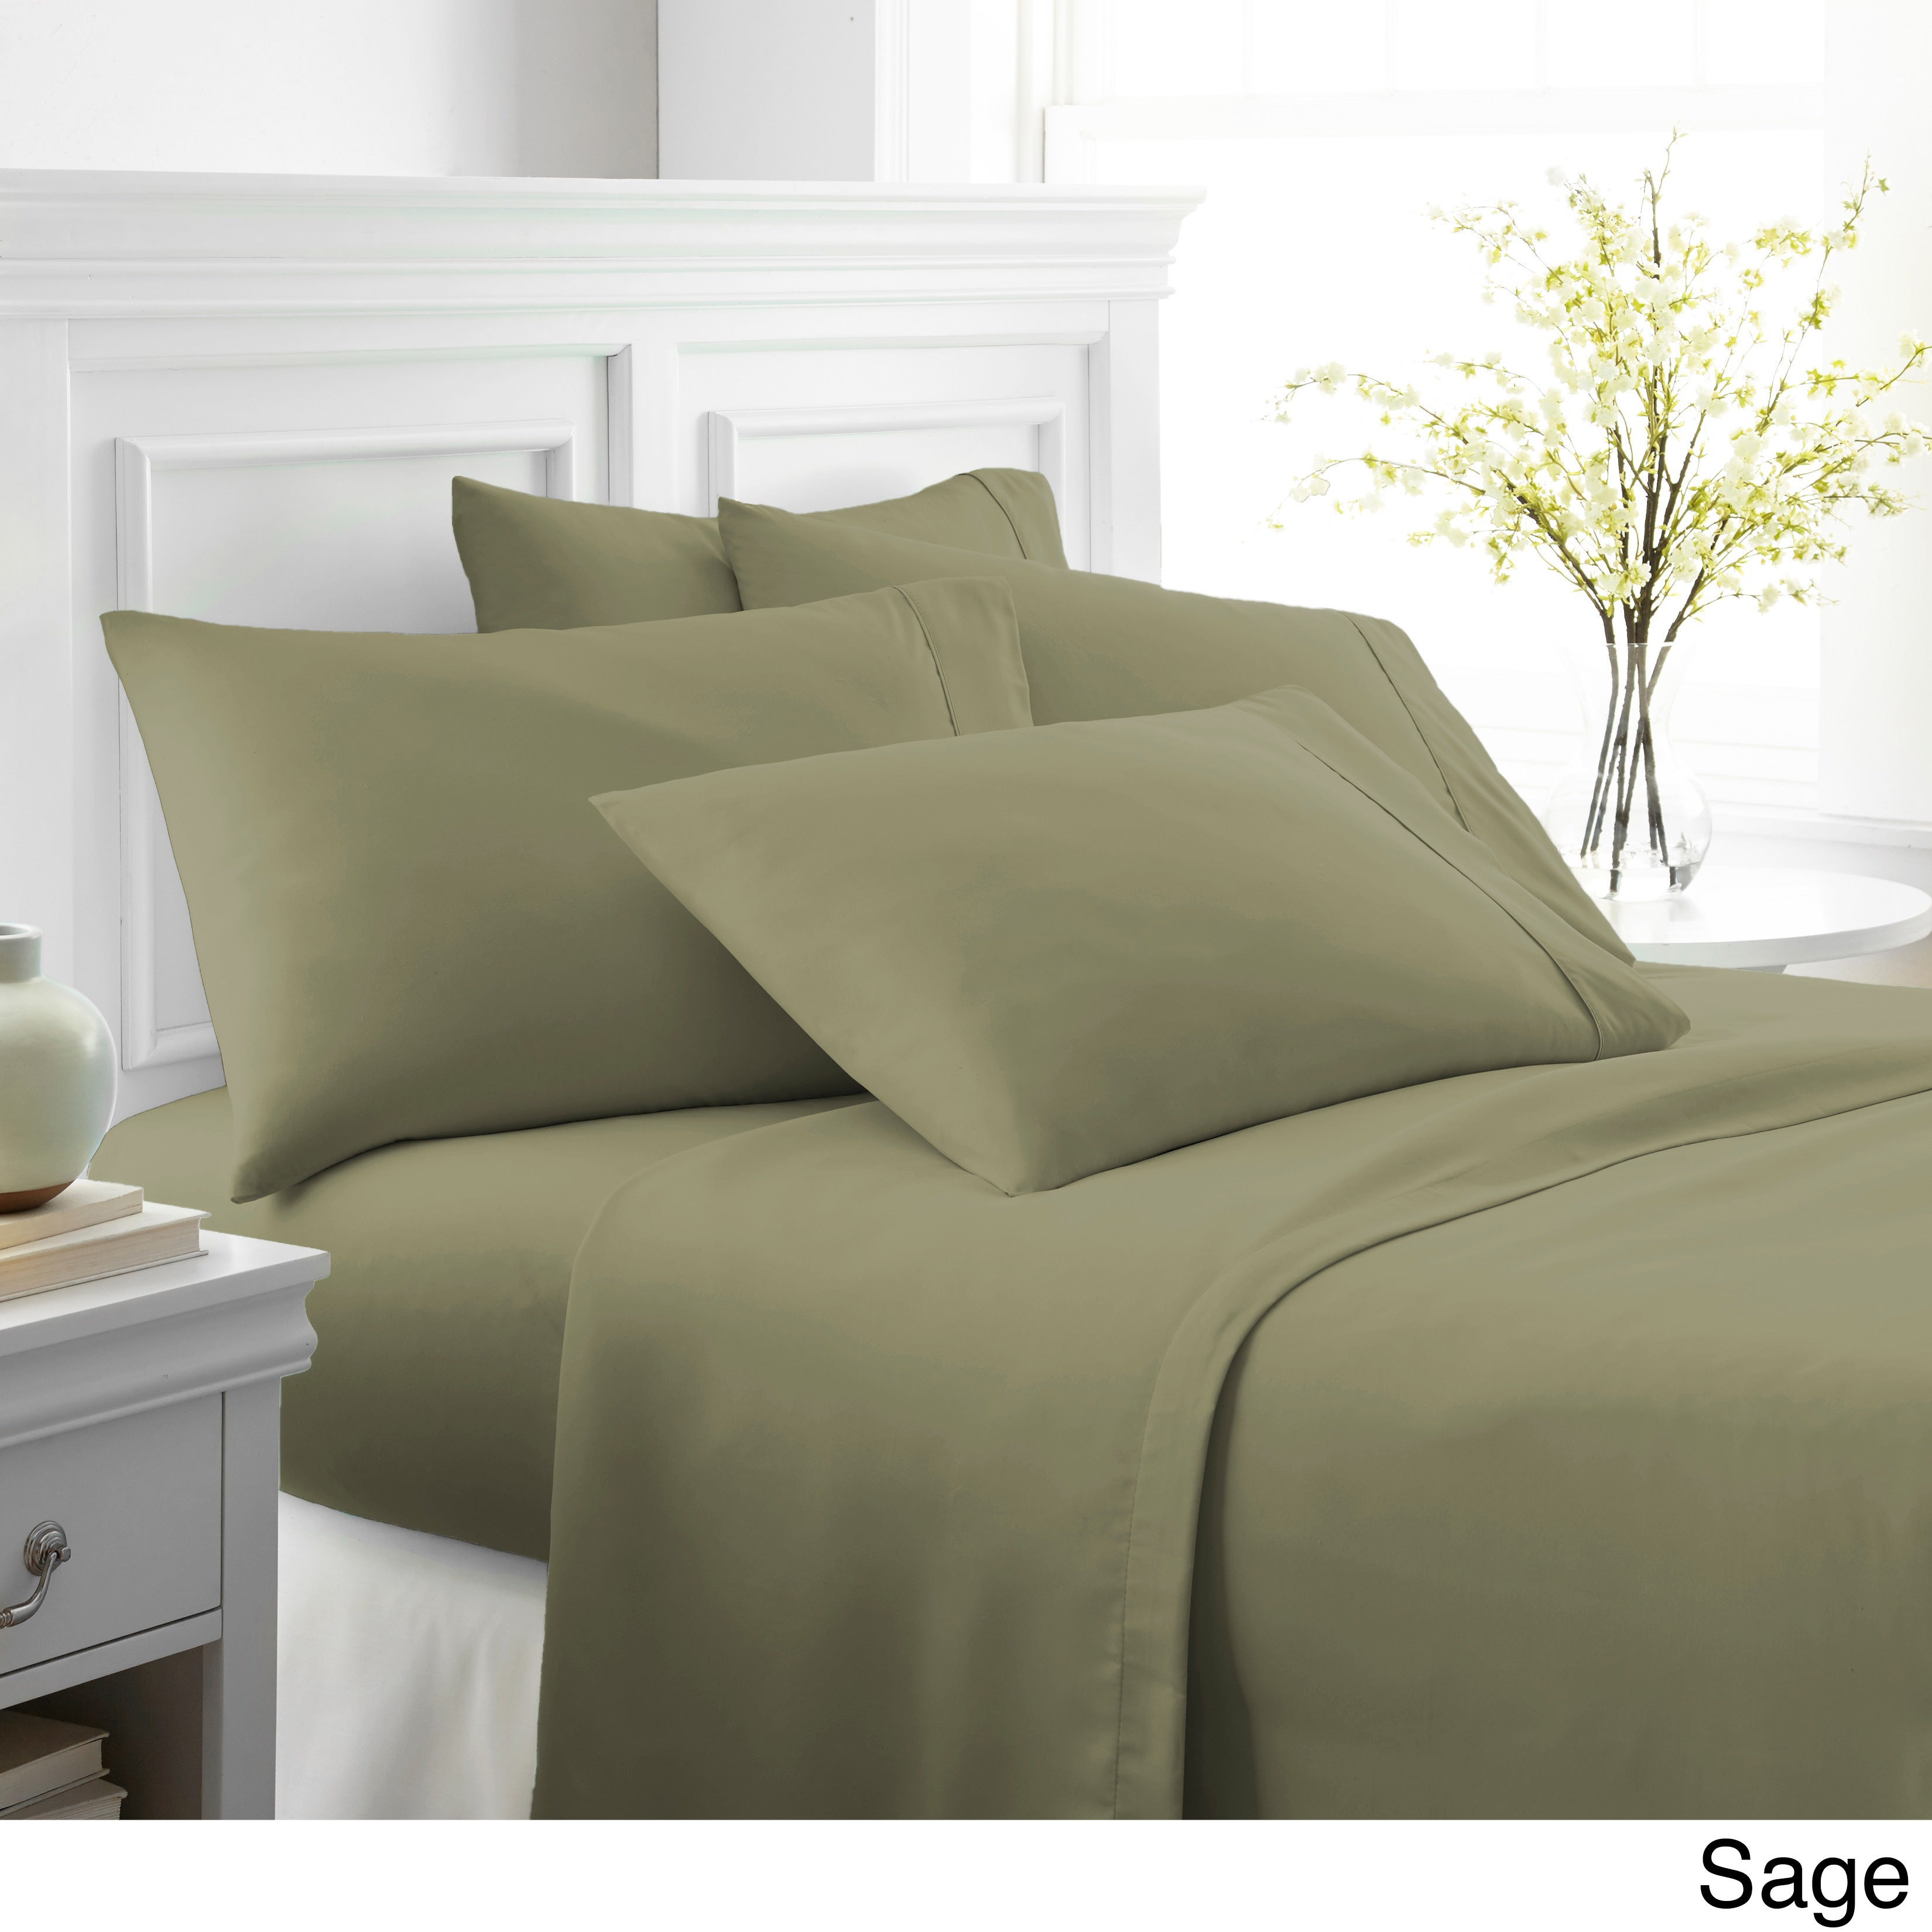 set image and carpet of bedding black white ideas floor sets with size green twin full bed rare wooden sage brown